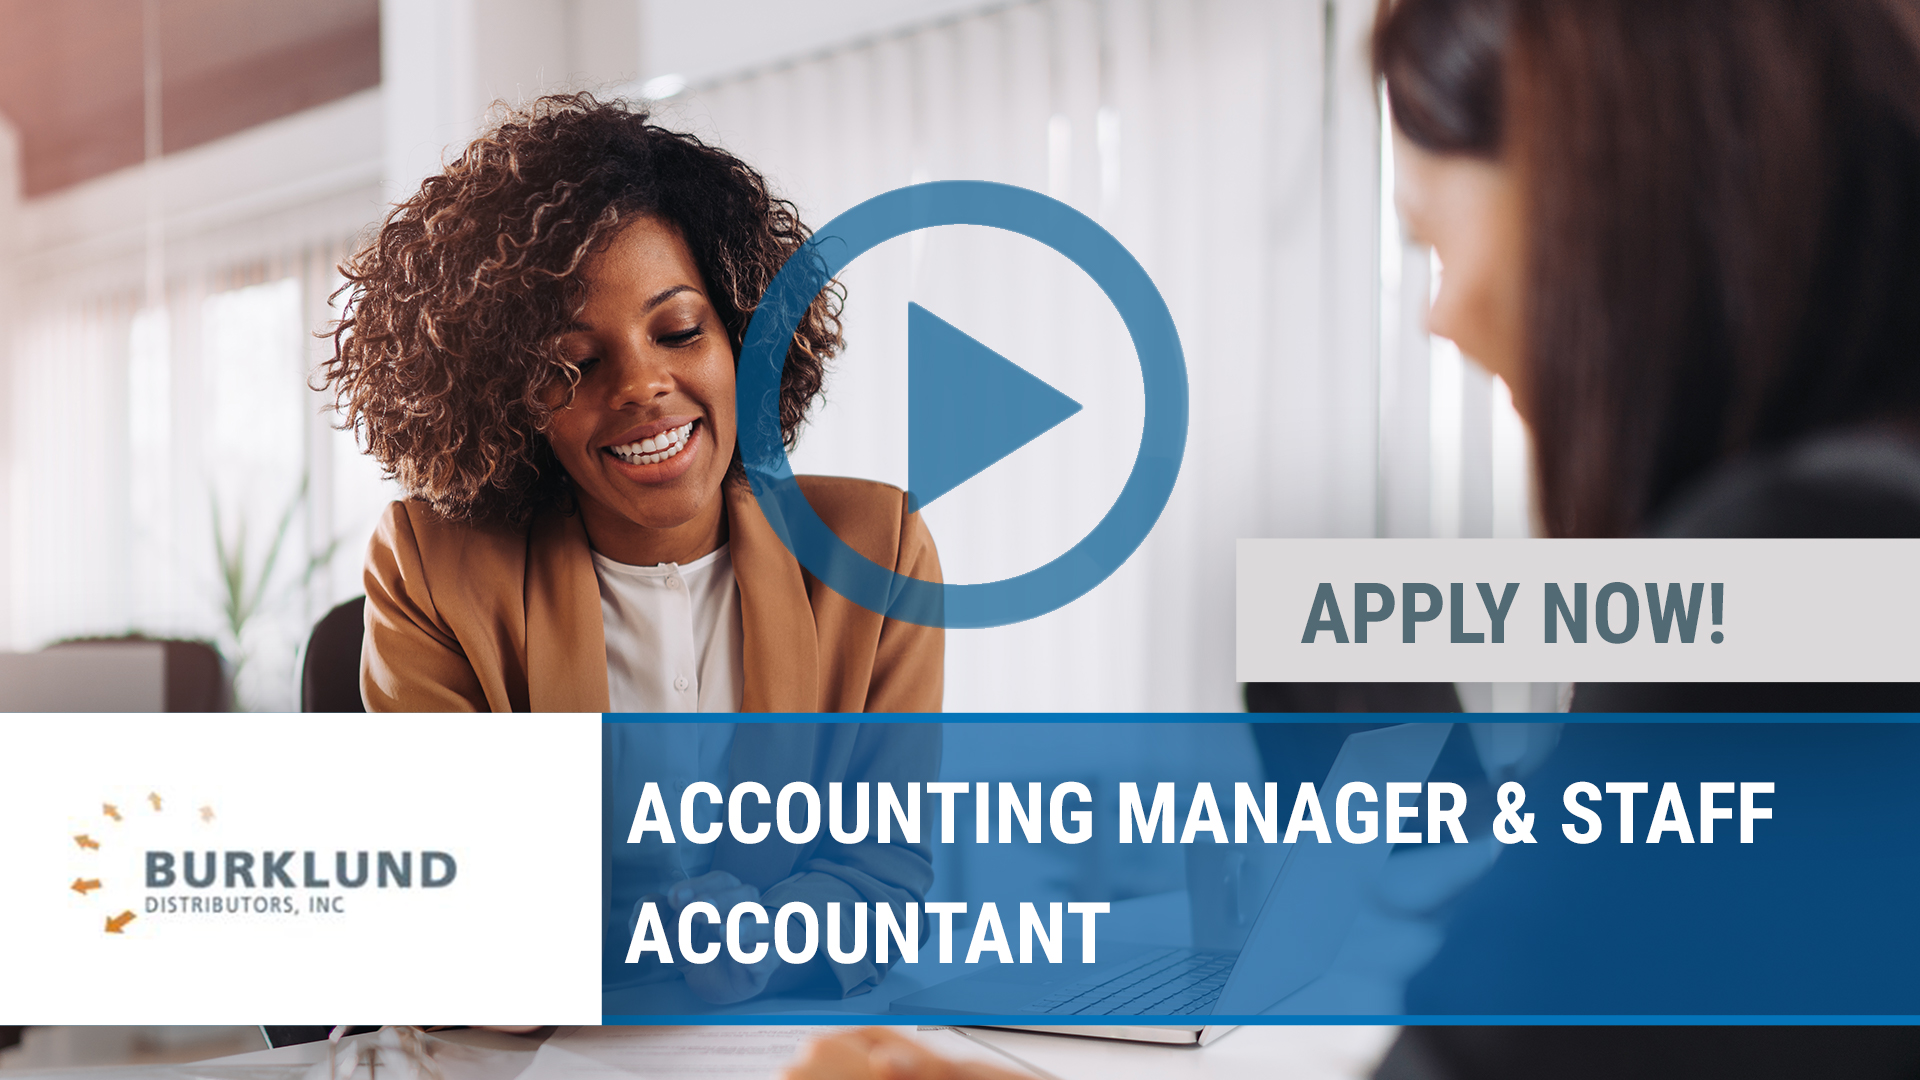 Watch our careers video for available job opening ACCOUNTING MANAGER & STAFF ACCOUNTANT in East Peoria, IL